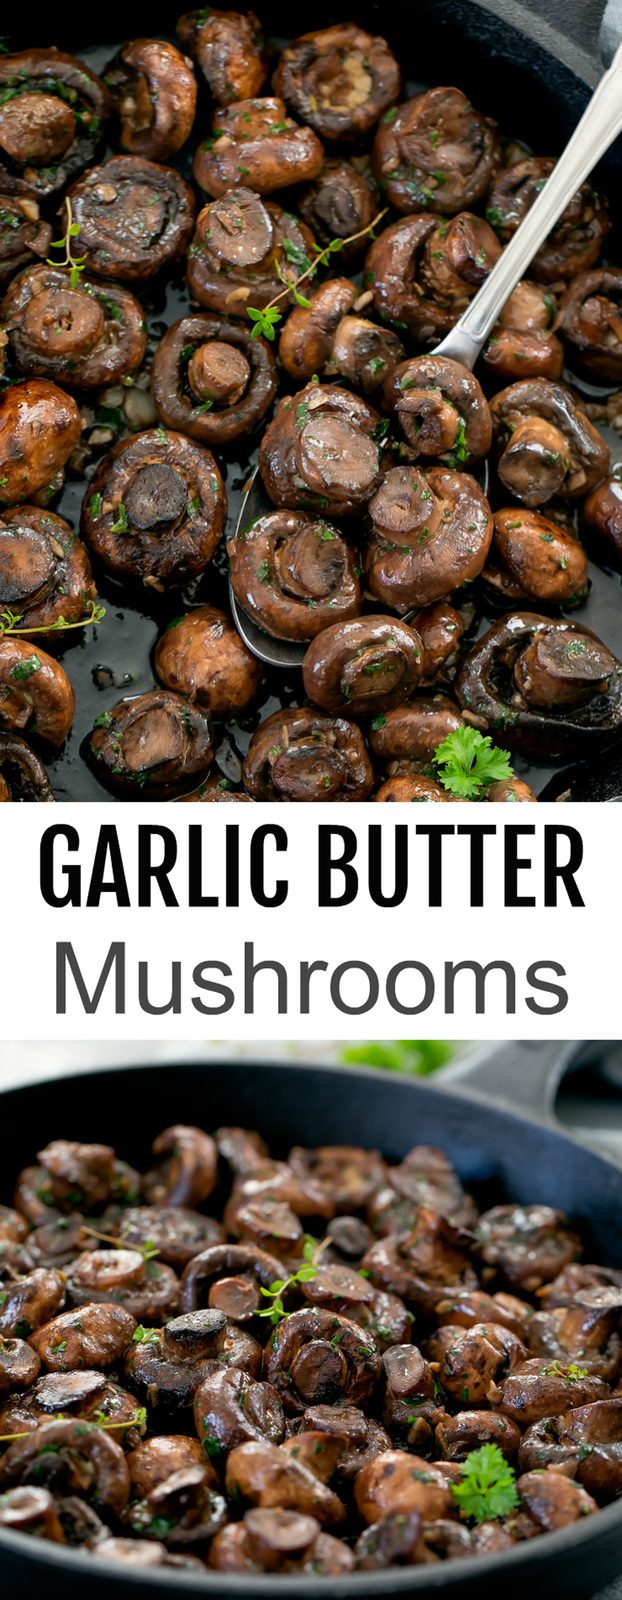 Sauteed Garlic Butter Mushrooms. A super easy side dish that works well with steak or any occasion. It's also low carb, gluten free and keto friendly.